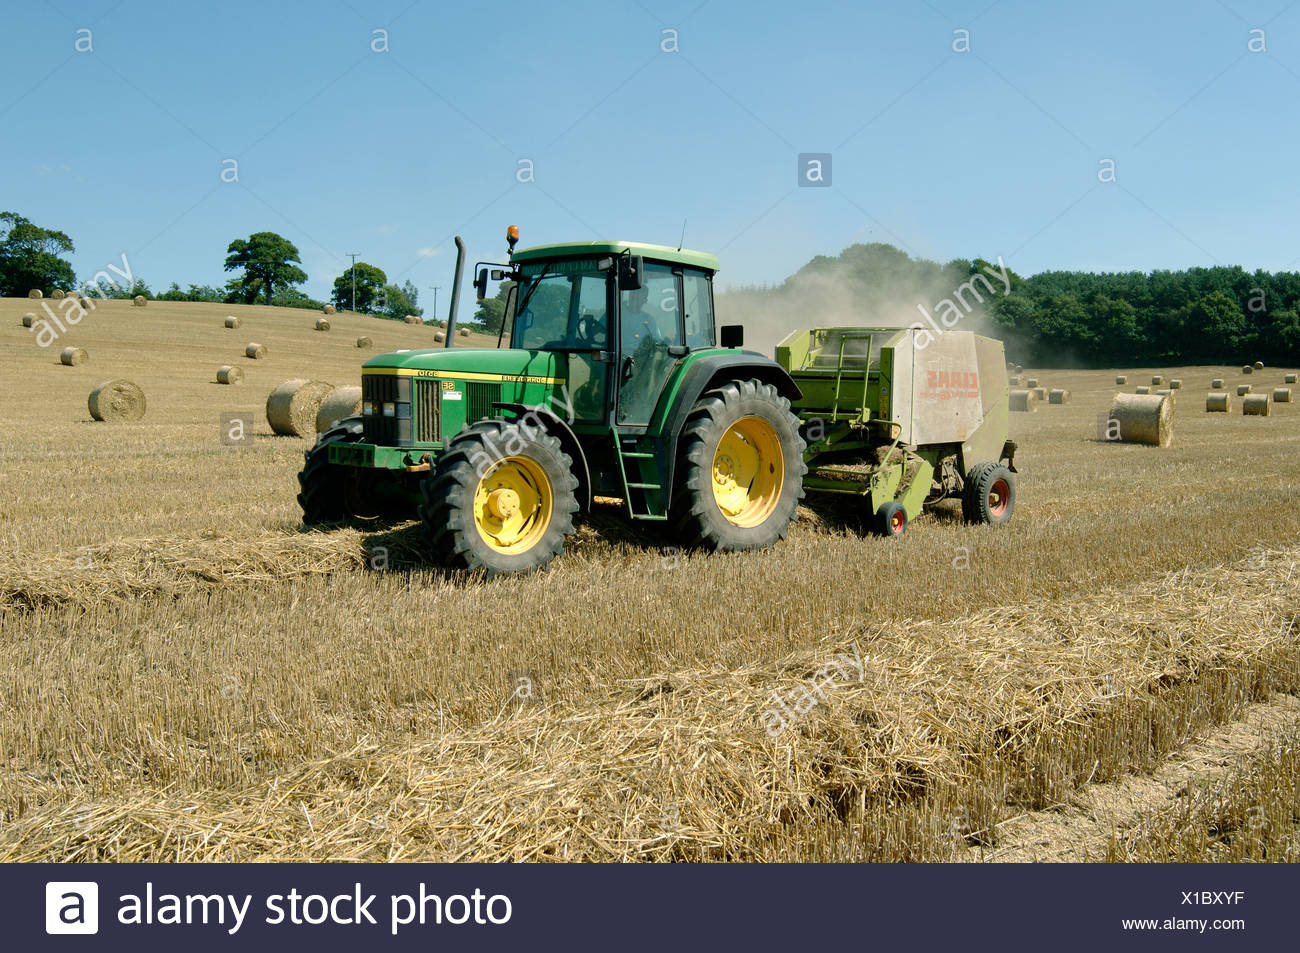 Baling Stock Photos & Baling Stock Images - Alamy